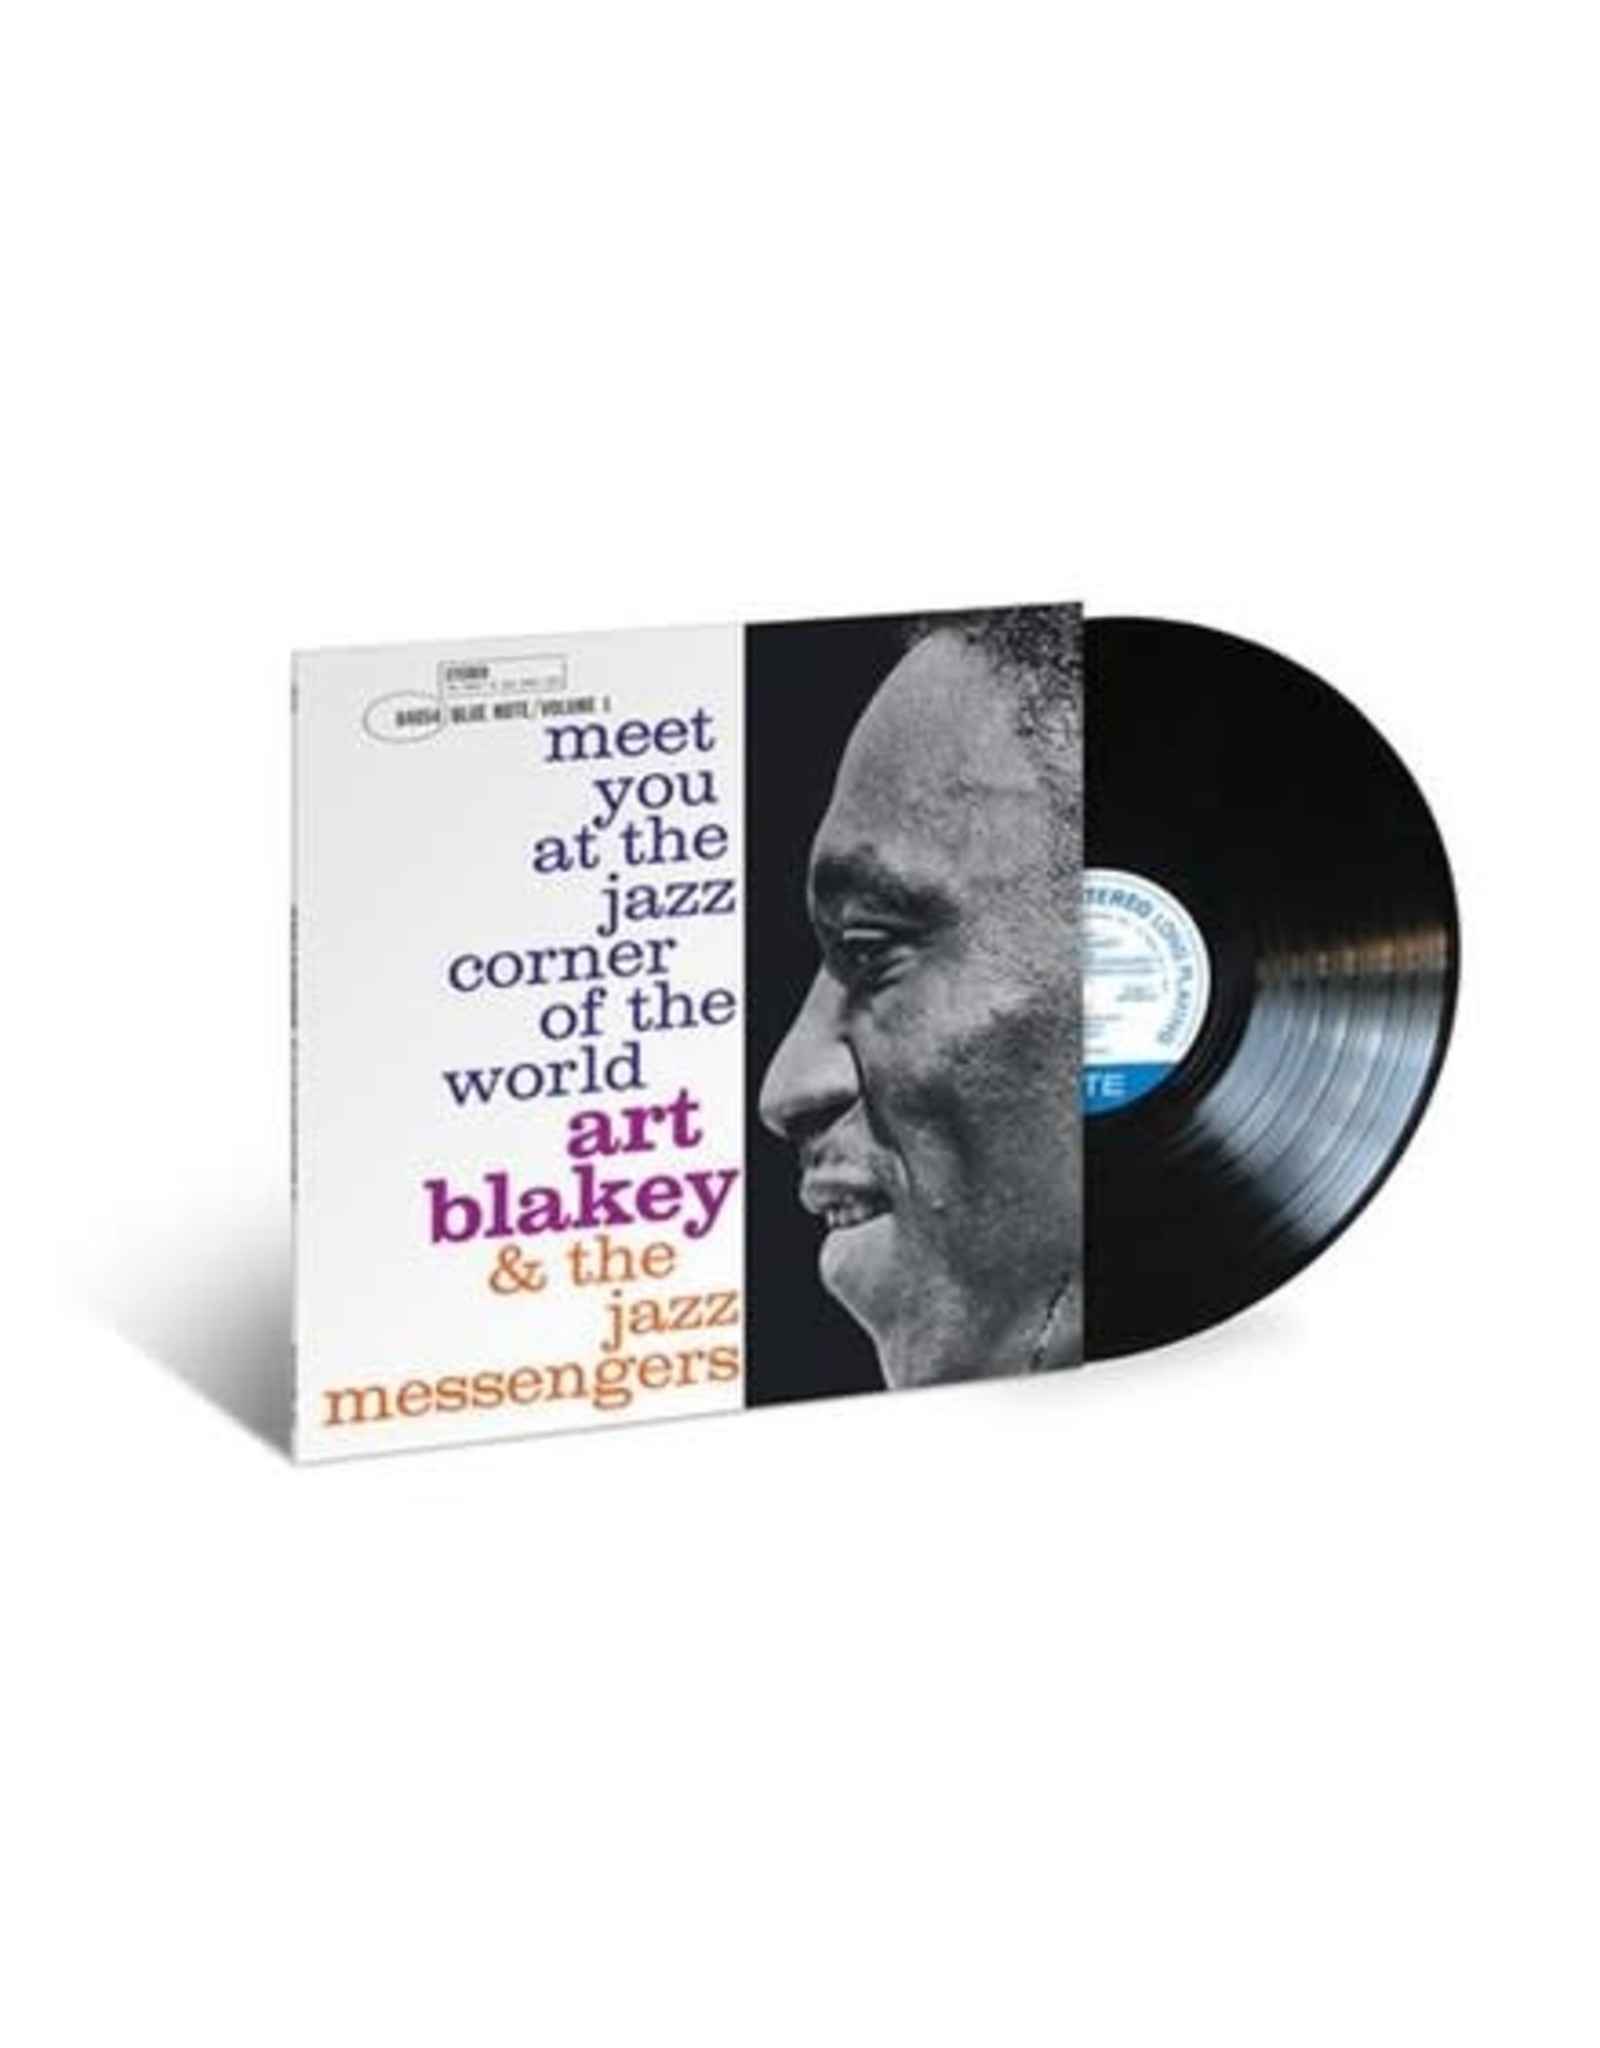 Blue Note Blakey, Art & The Jazz Messengers: Meet You at the Jazz Corner of the World - Vol.1 LP